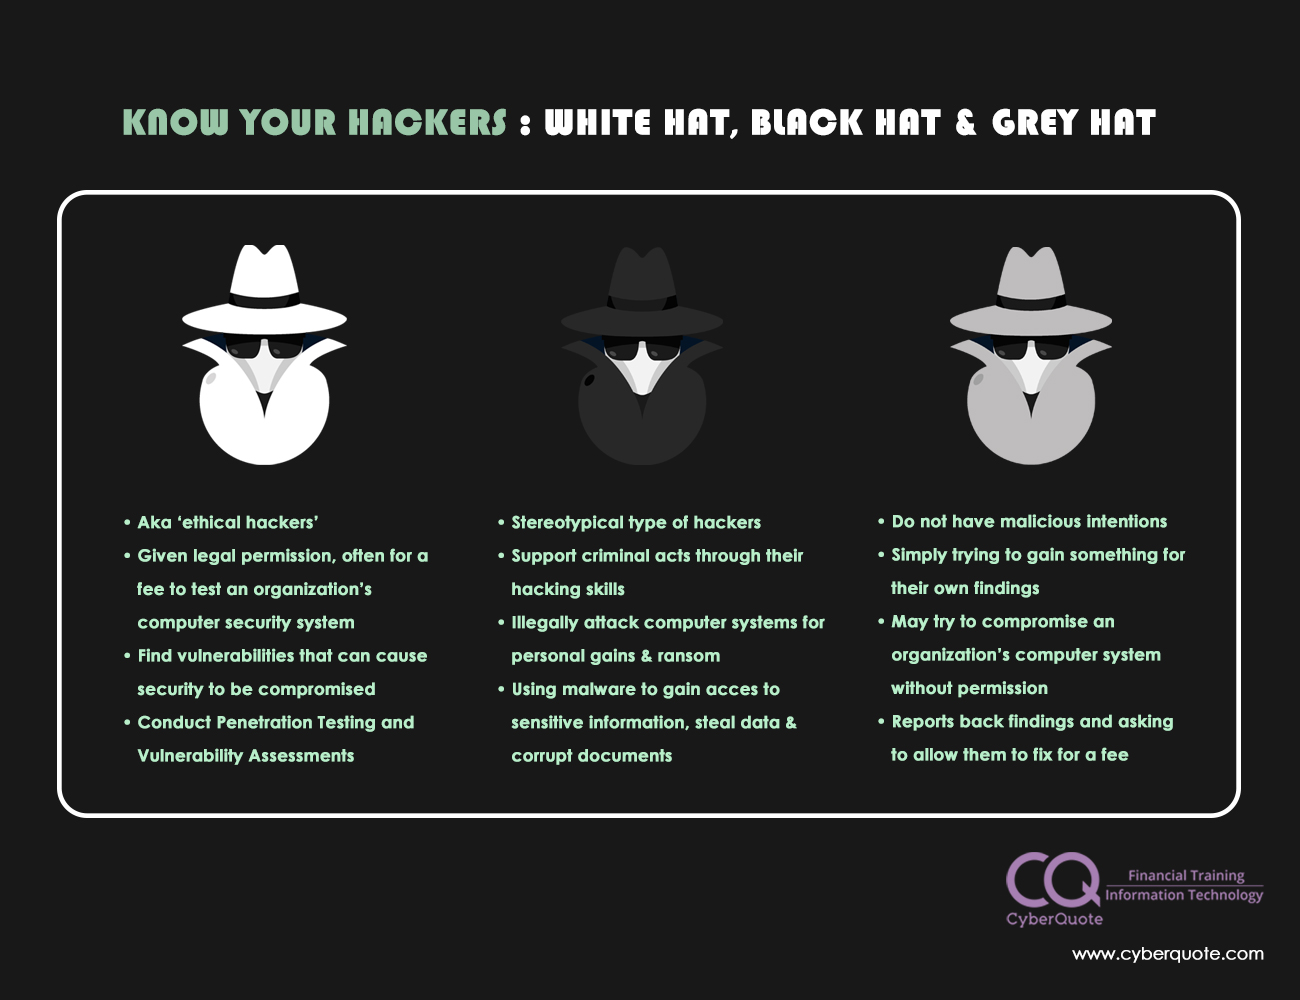 Know Your Hackers White Hat Black Hat Grey Hat